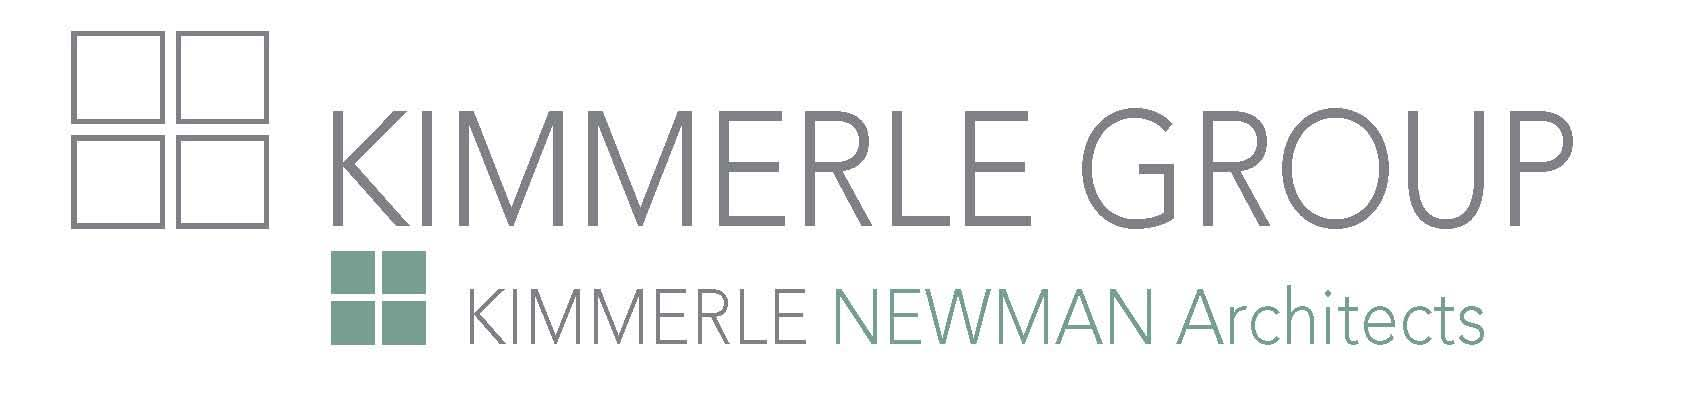 Kimmerle Group Kimmerle Newman Architects